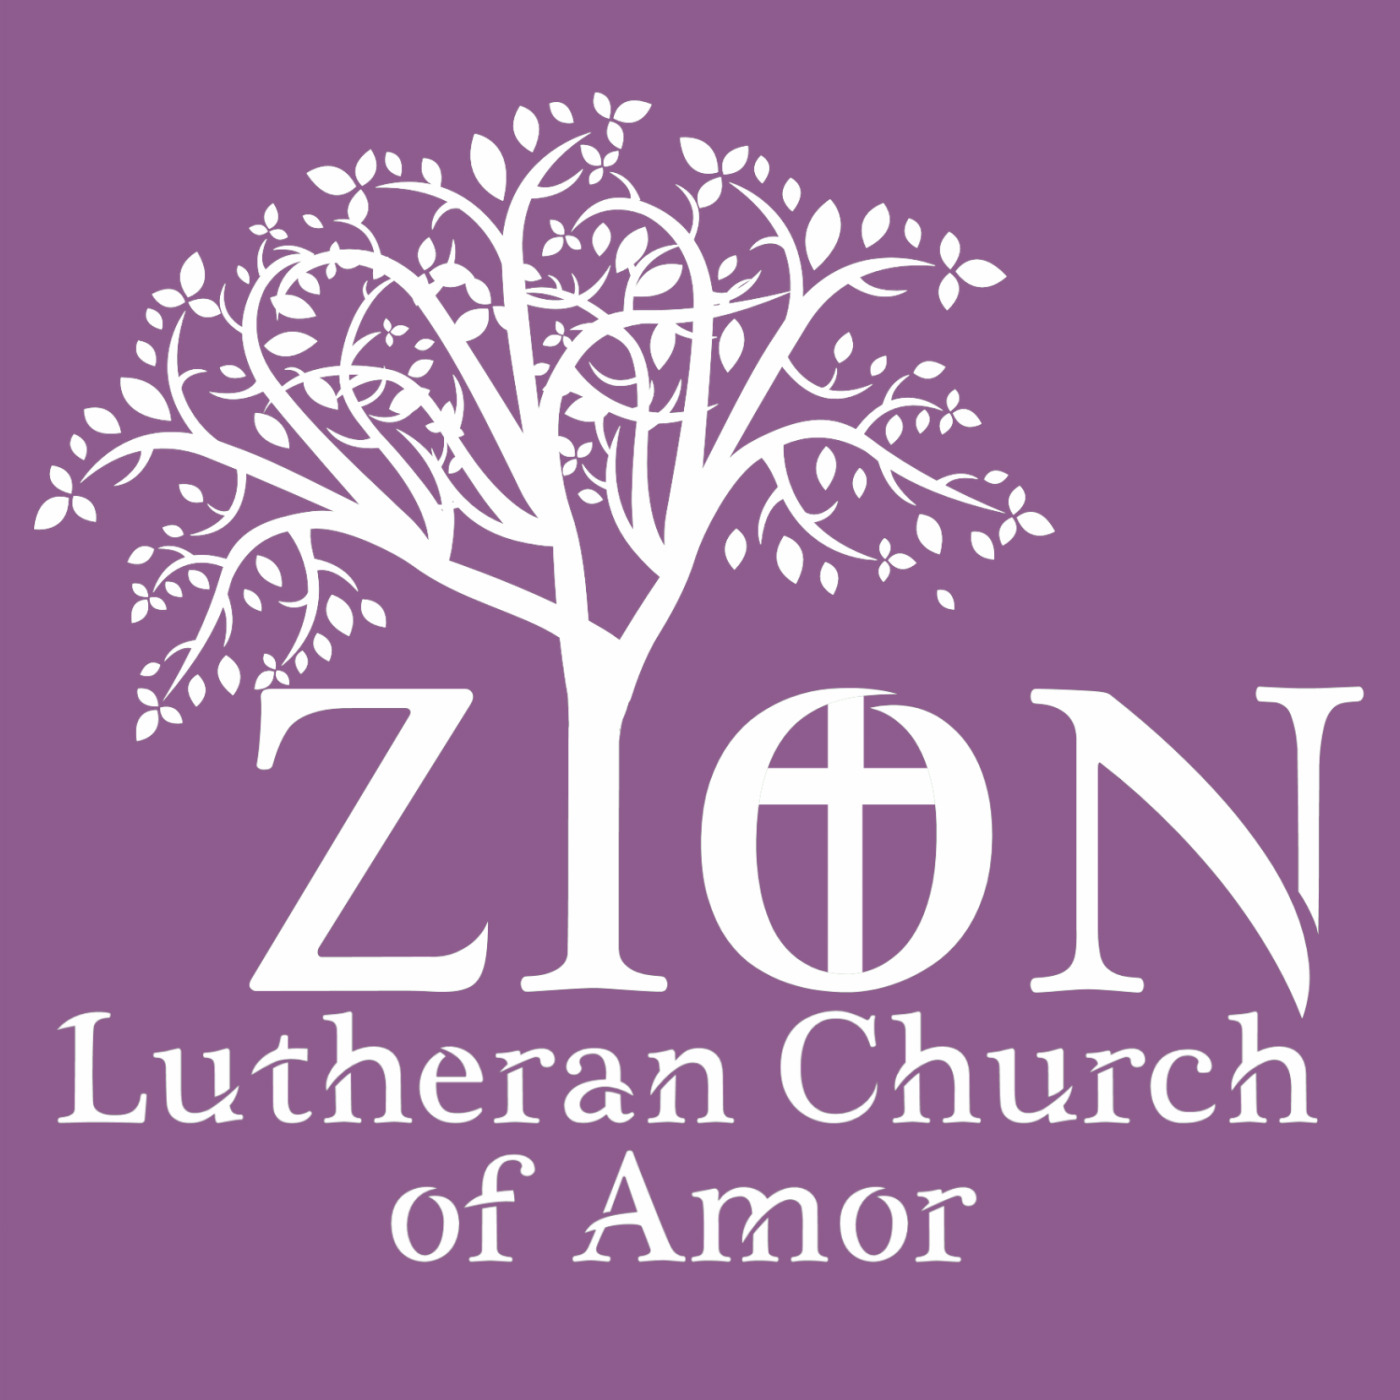 Zion Lutheran Church of Amor